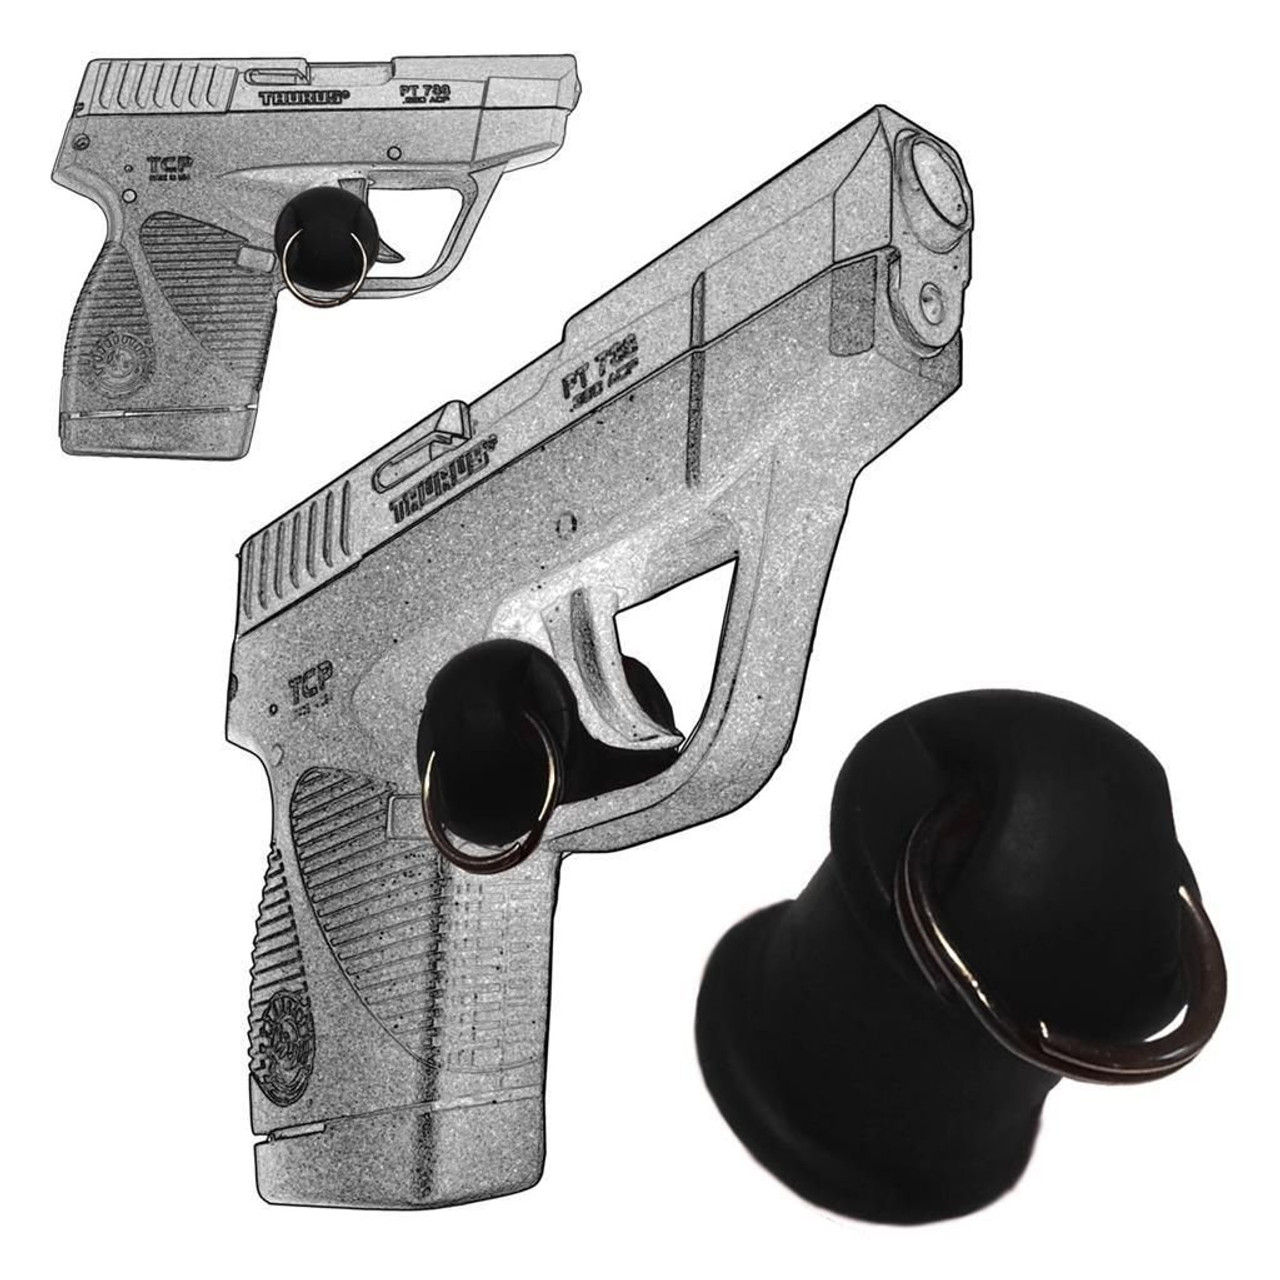 Taurus PT738 380 and PT732 .32 Caliber Concealed Carry Micro Holster Trigger Stop With Push-Pull Feature, PP